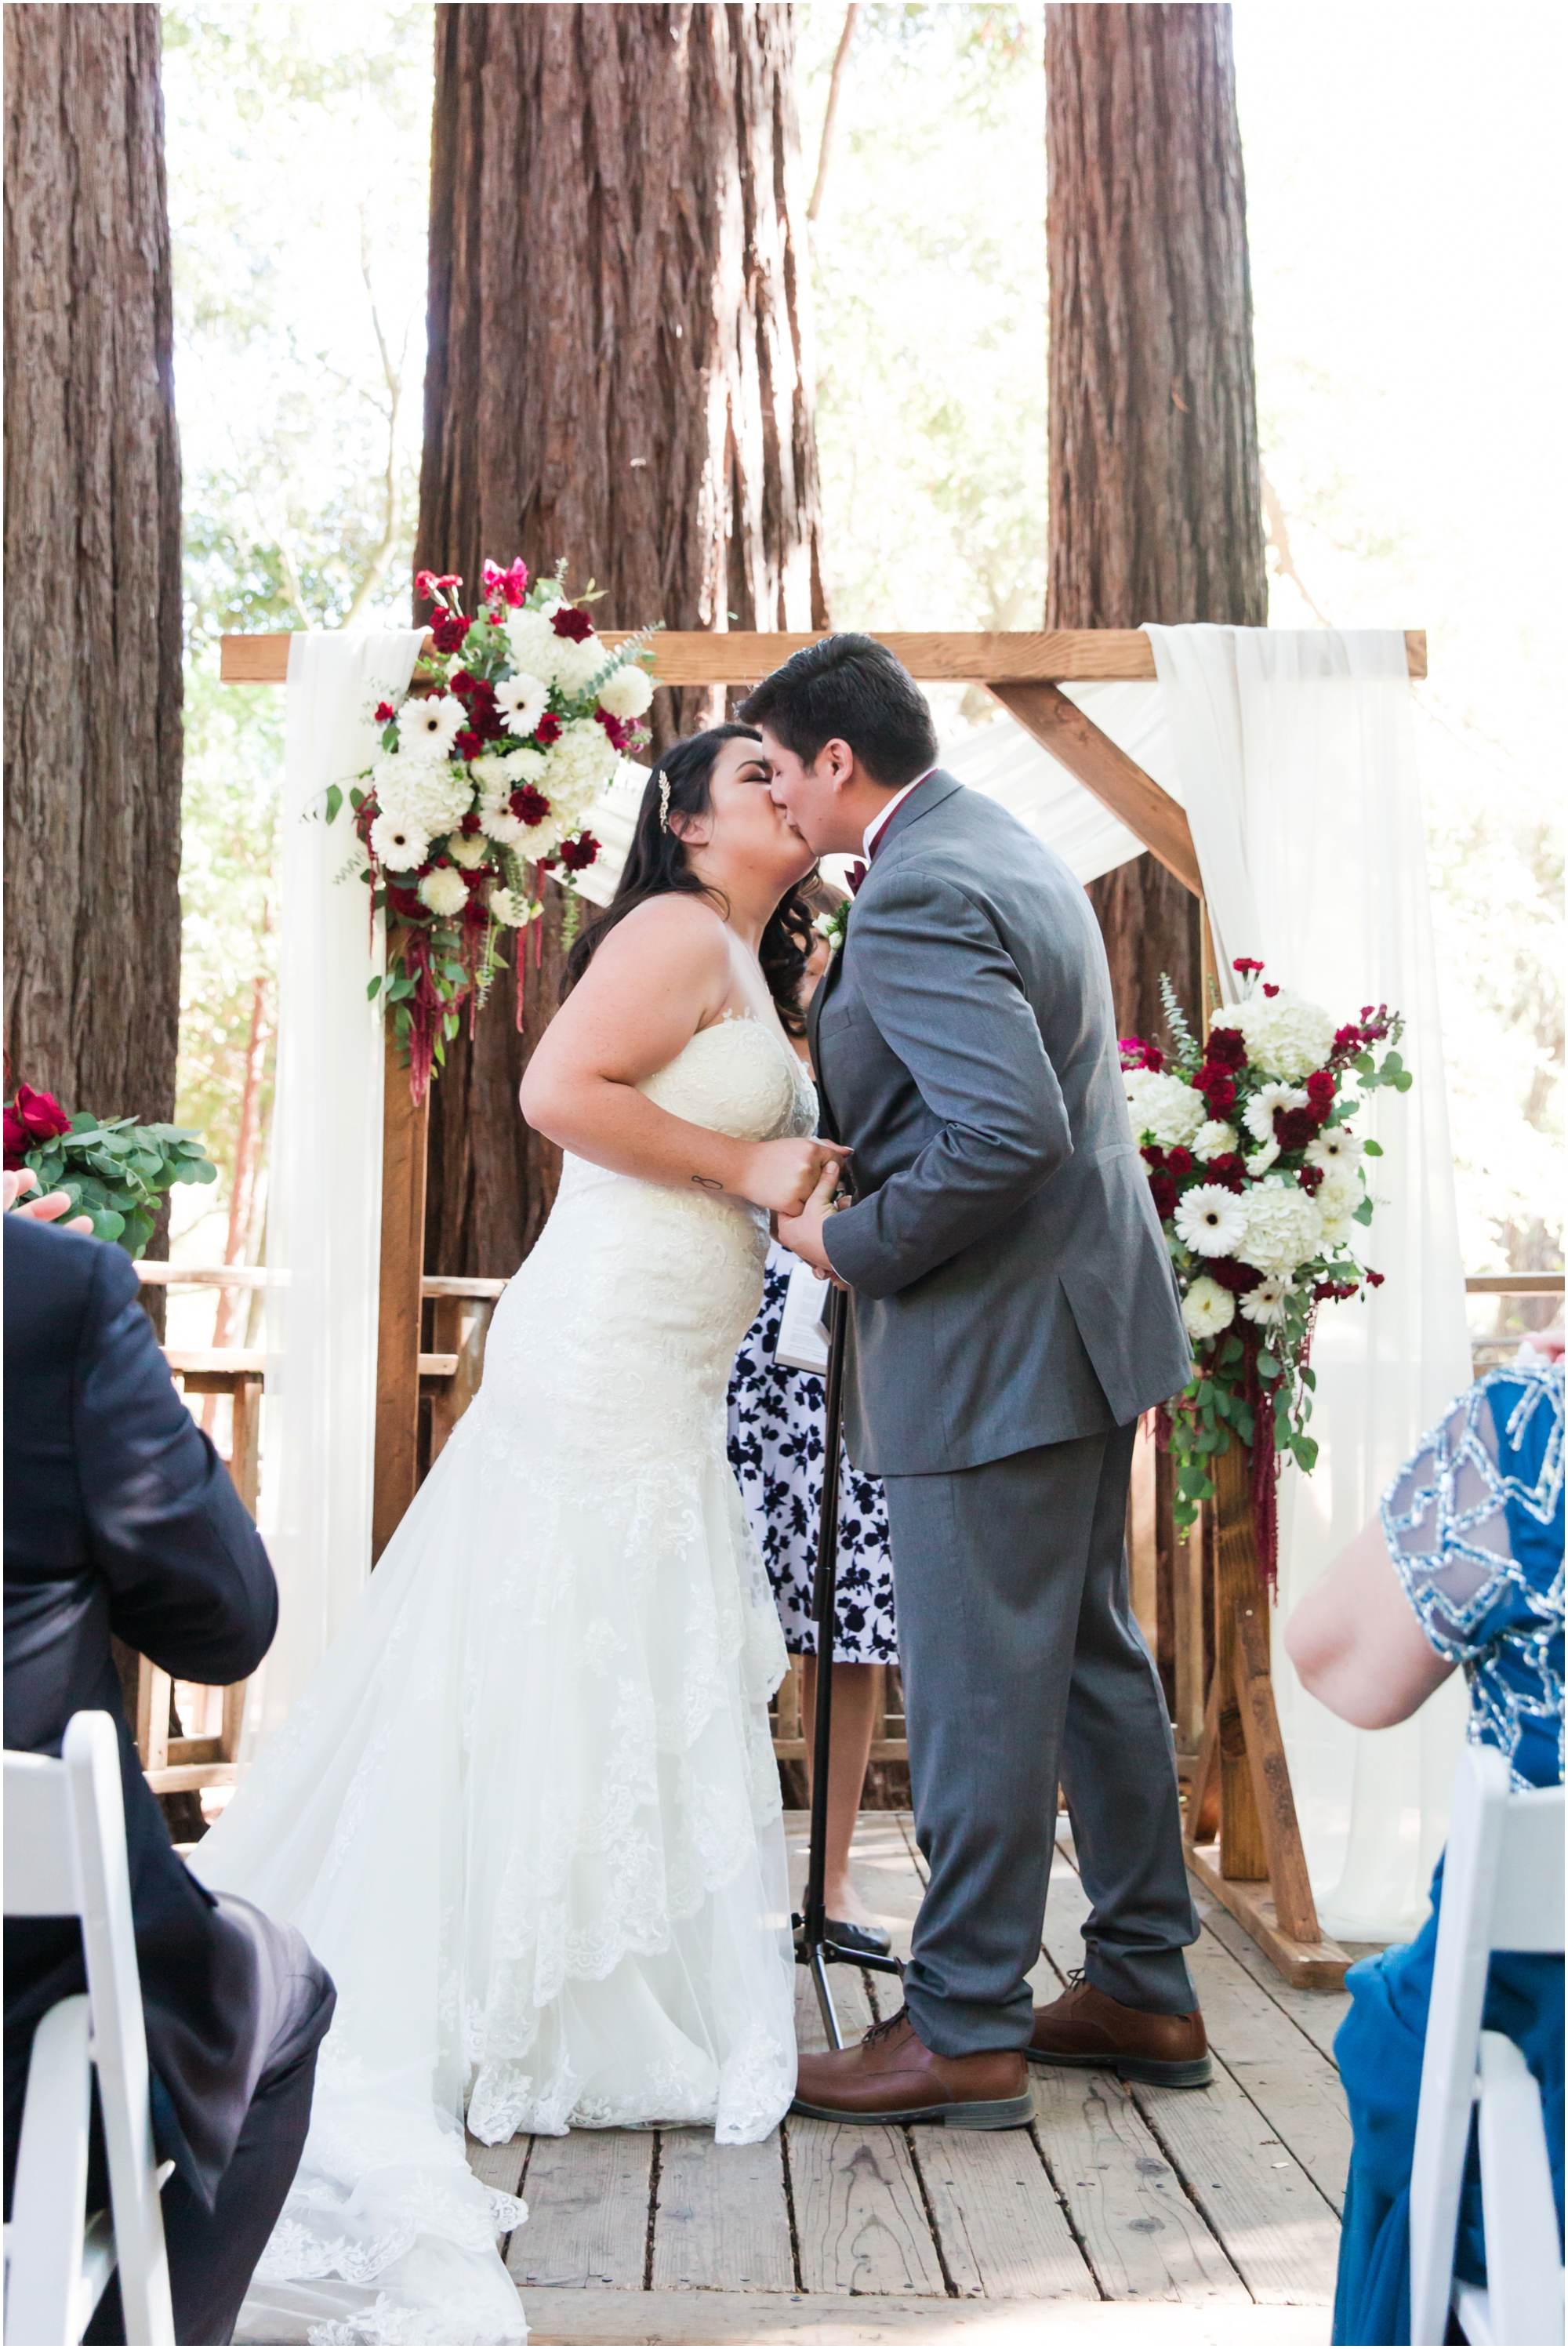 Sanborn Park Saratoga wedding pictures by Briana Calderon Photography_0129.jpg